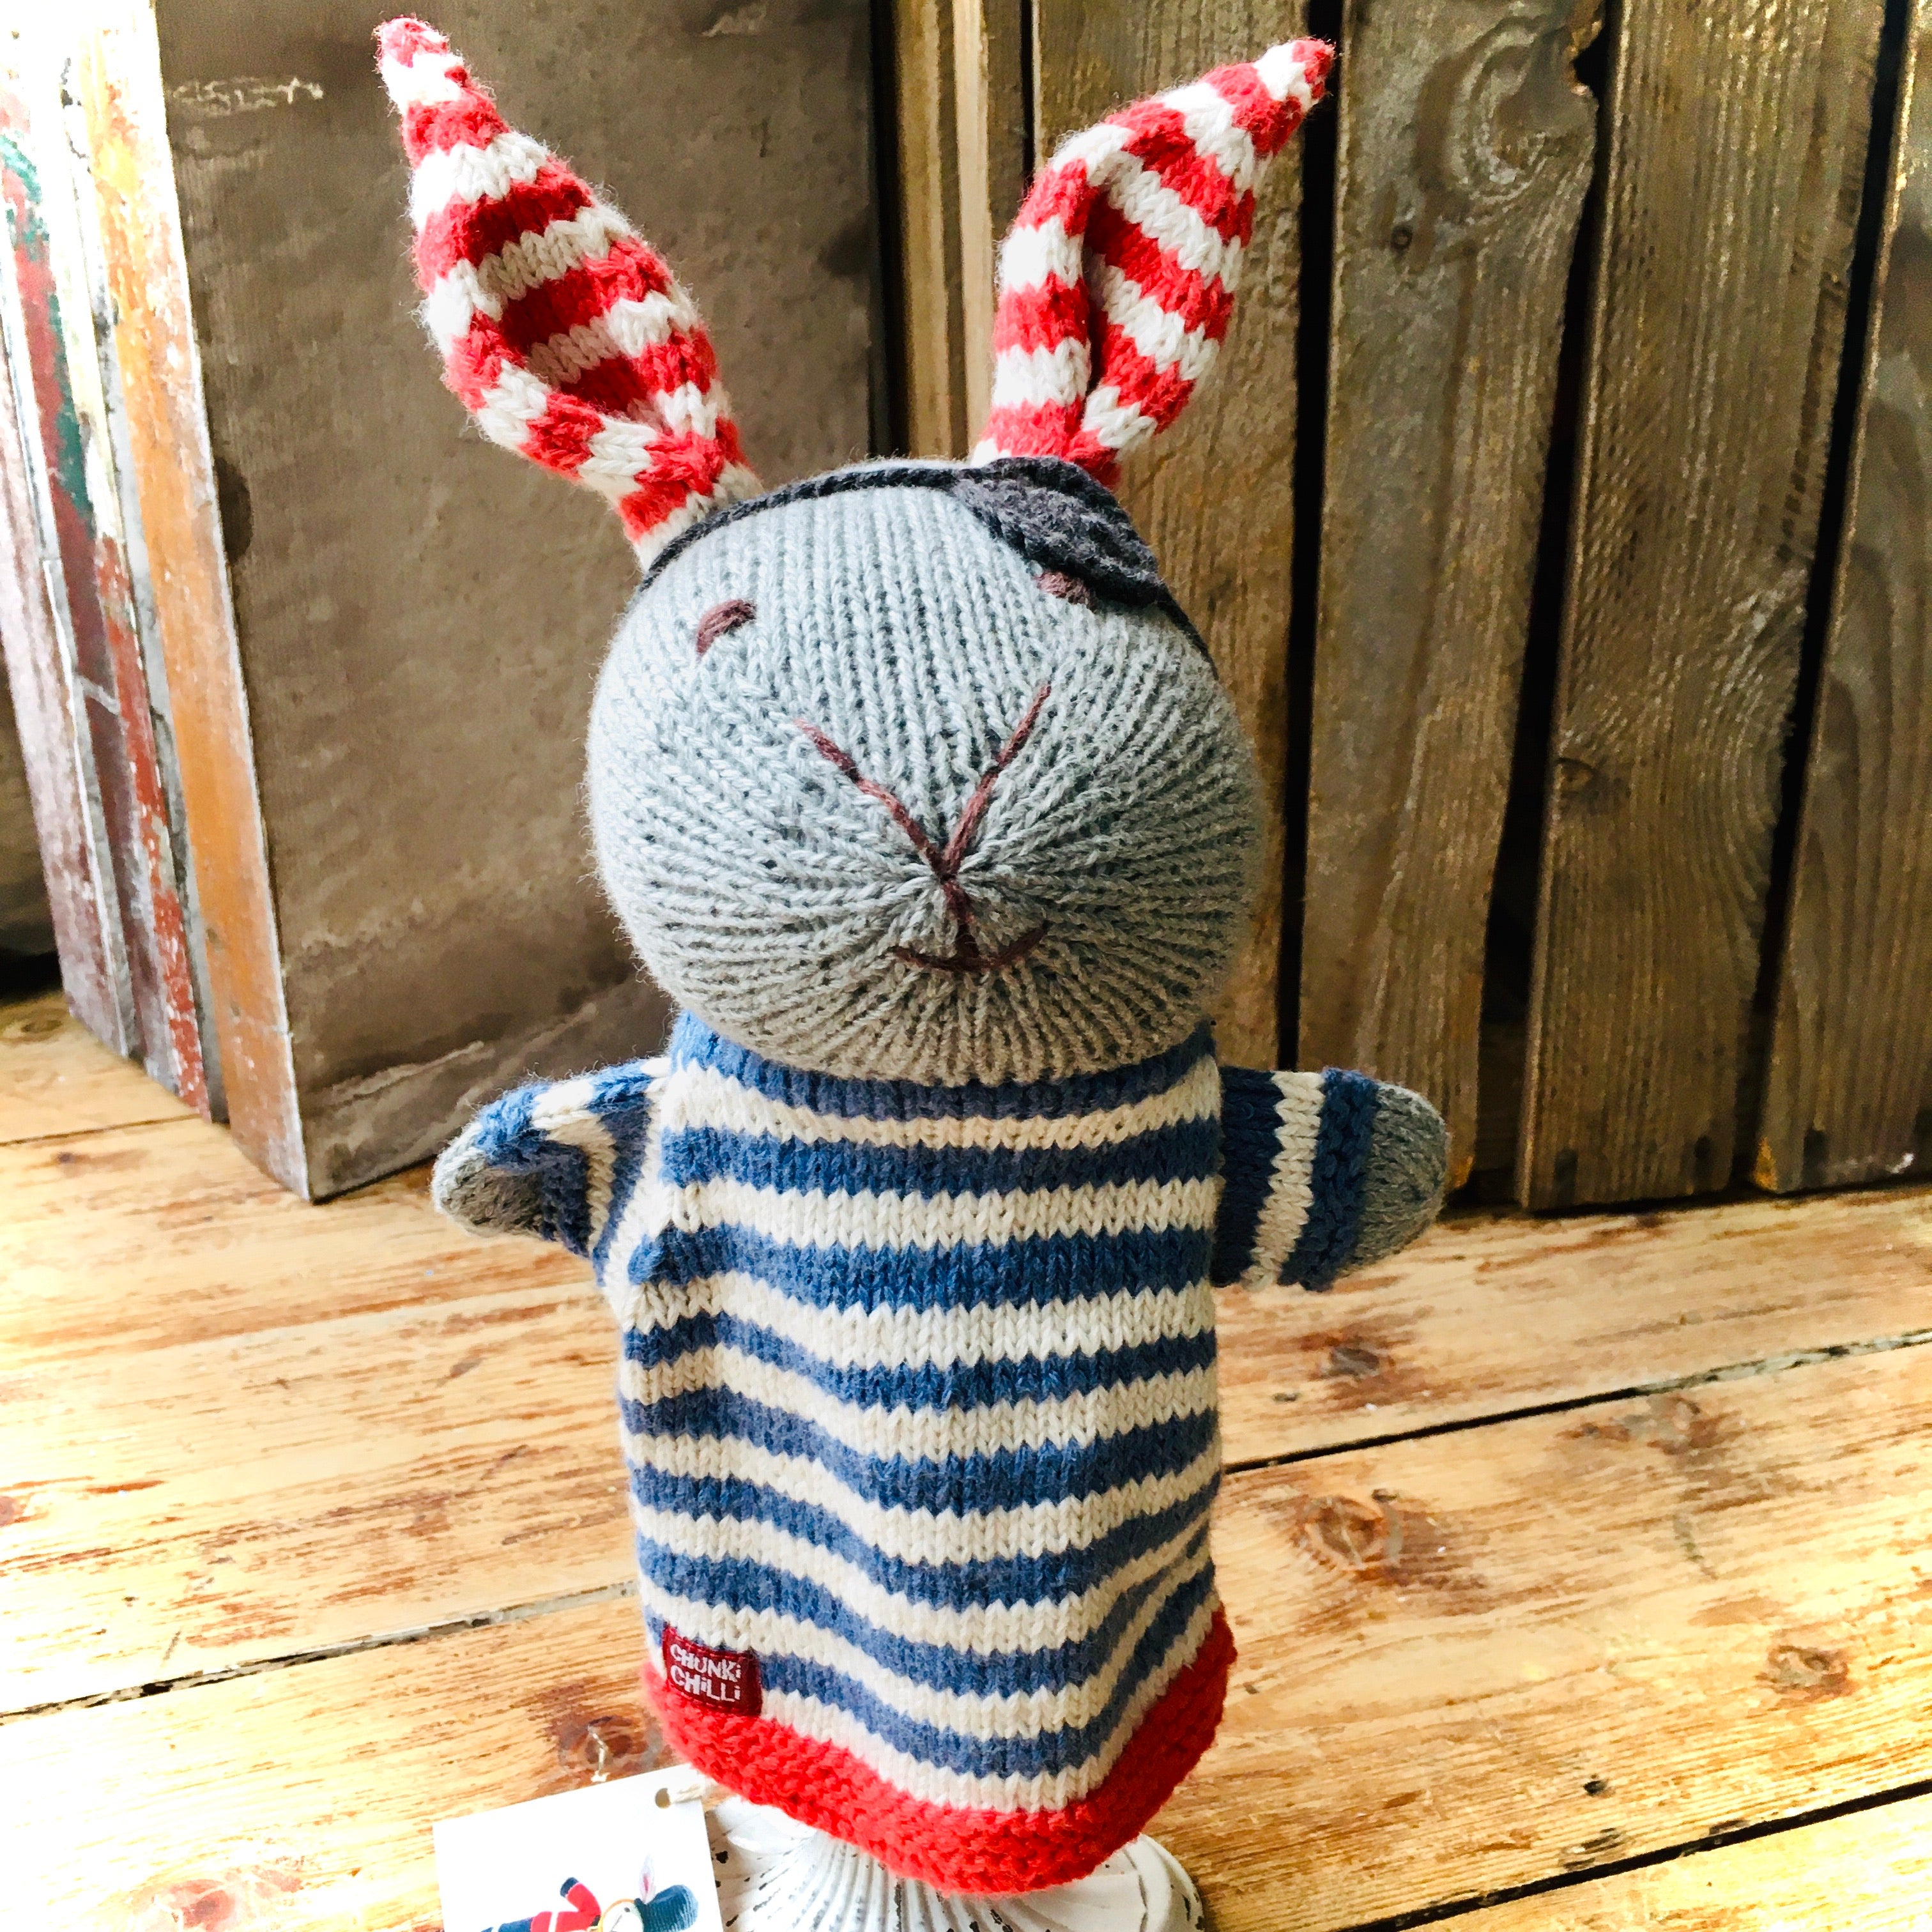 Pirate Rabbit Organic Cotton Knitted Hand Puppet